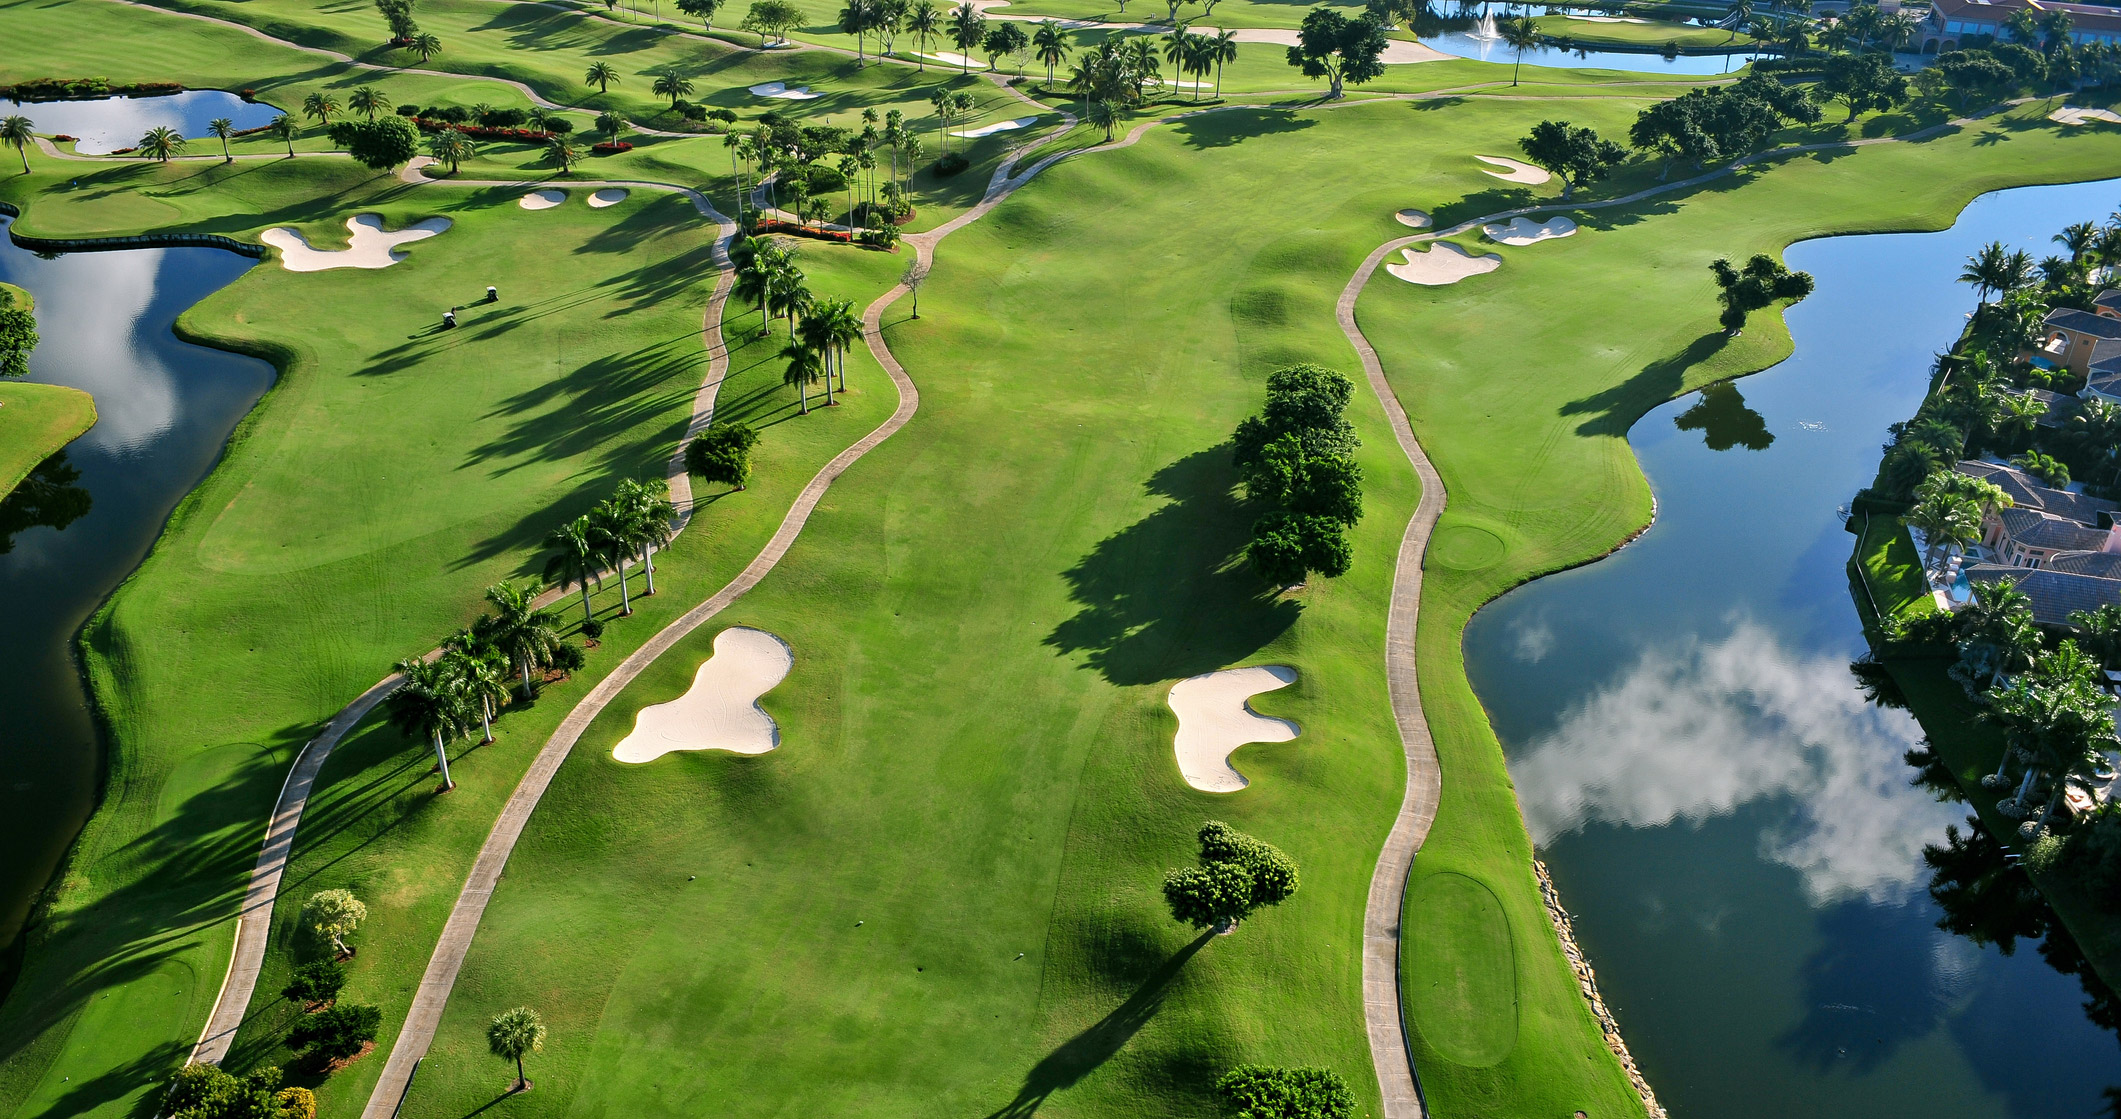 Overhead view of a golf course